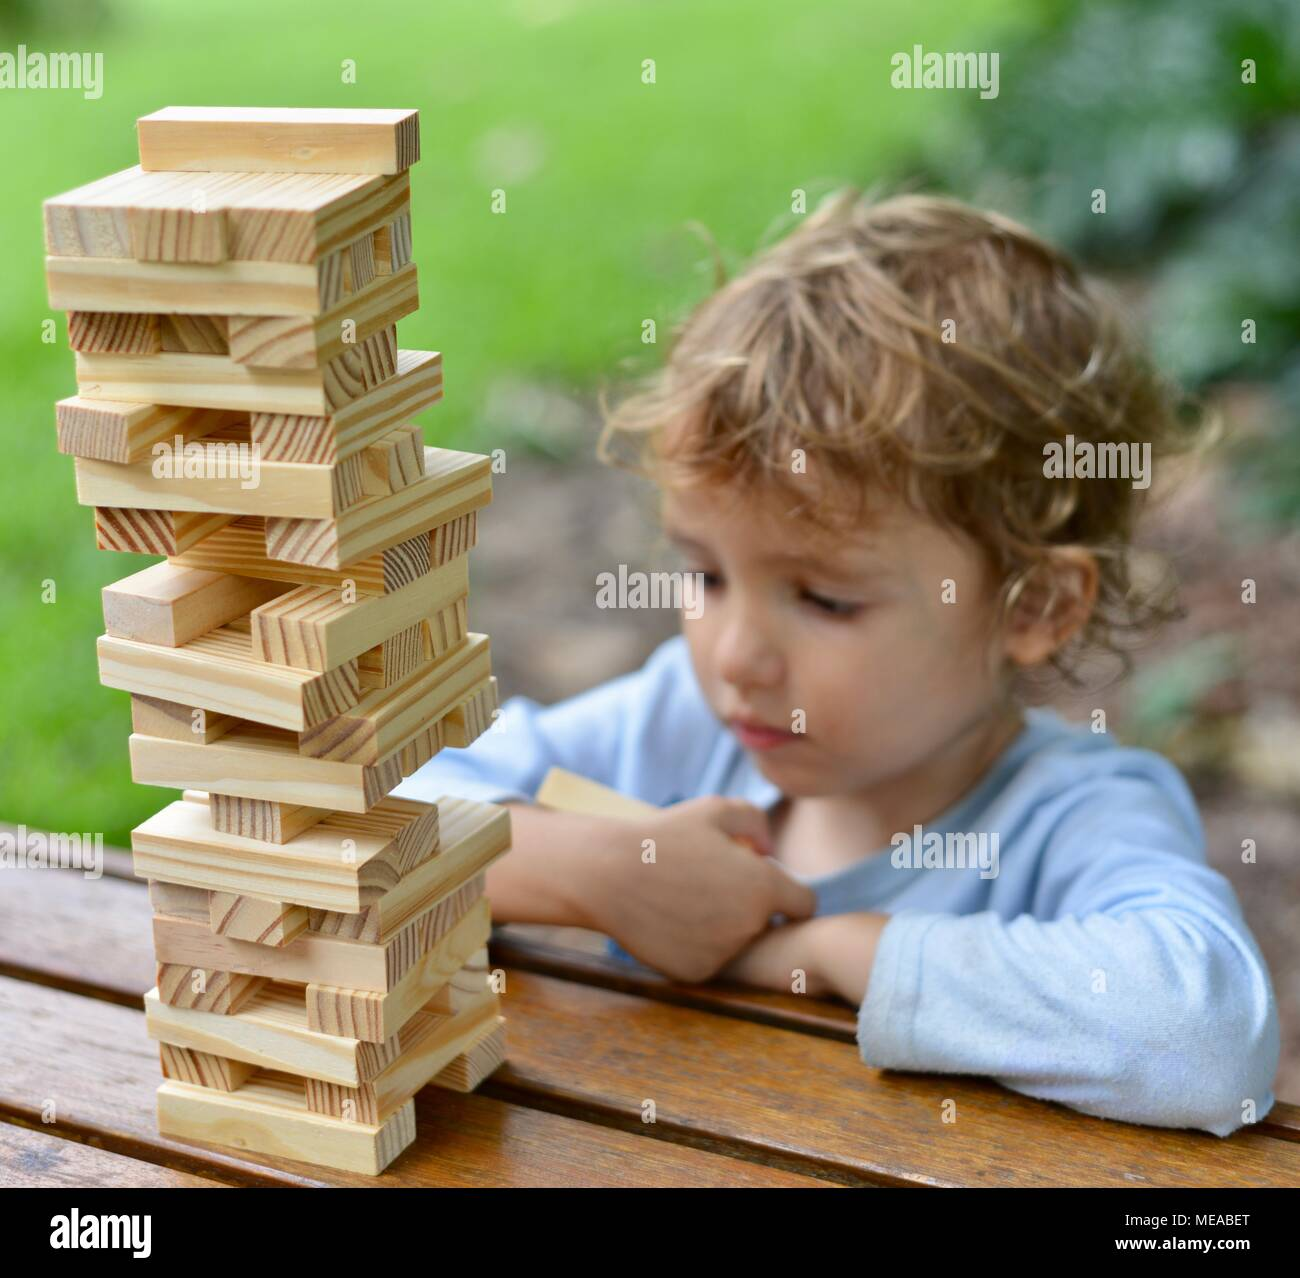 Cute child playing with building blocks and developing fine motor skills and problem solving, Townsville QLD, Australia - Stock Image